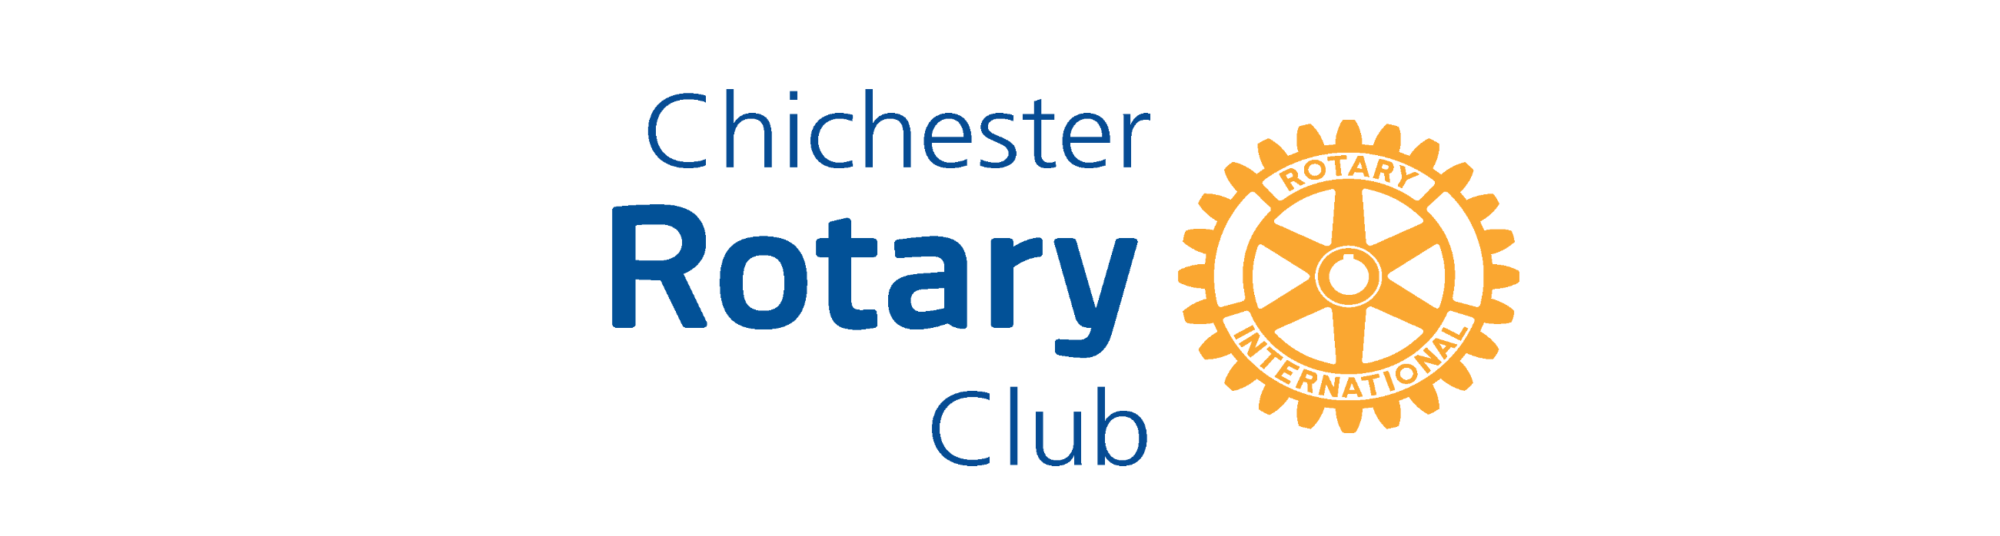 Chichester Rotary Club